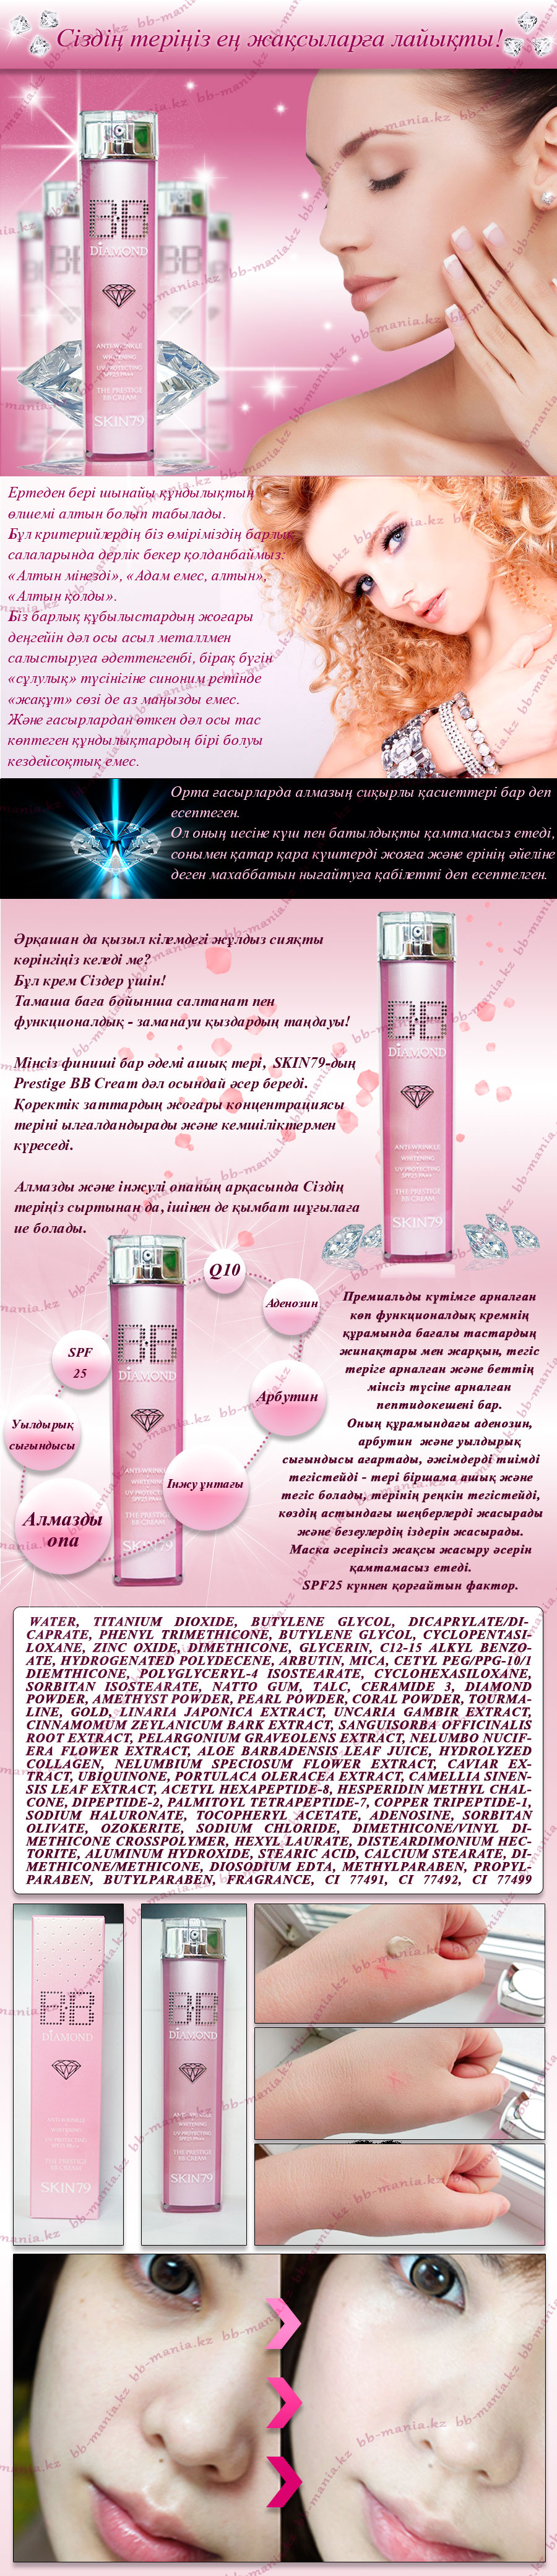 Diamond-Prestige-BB-Cream-[Skin79]-кз-min